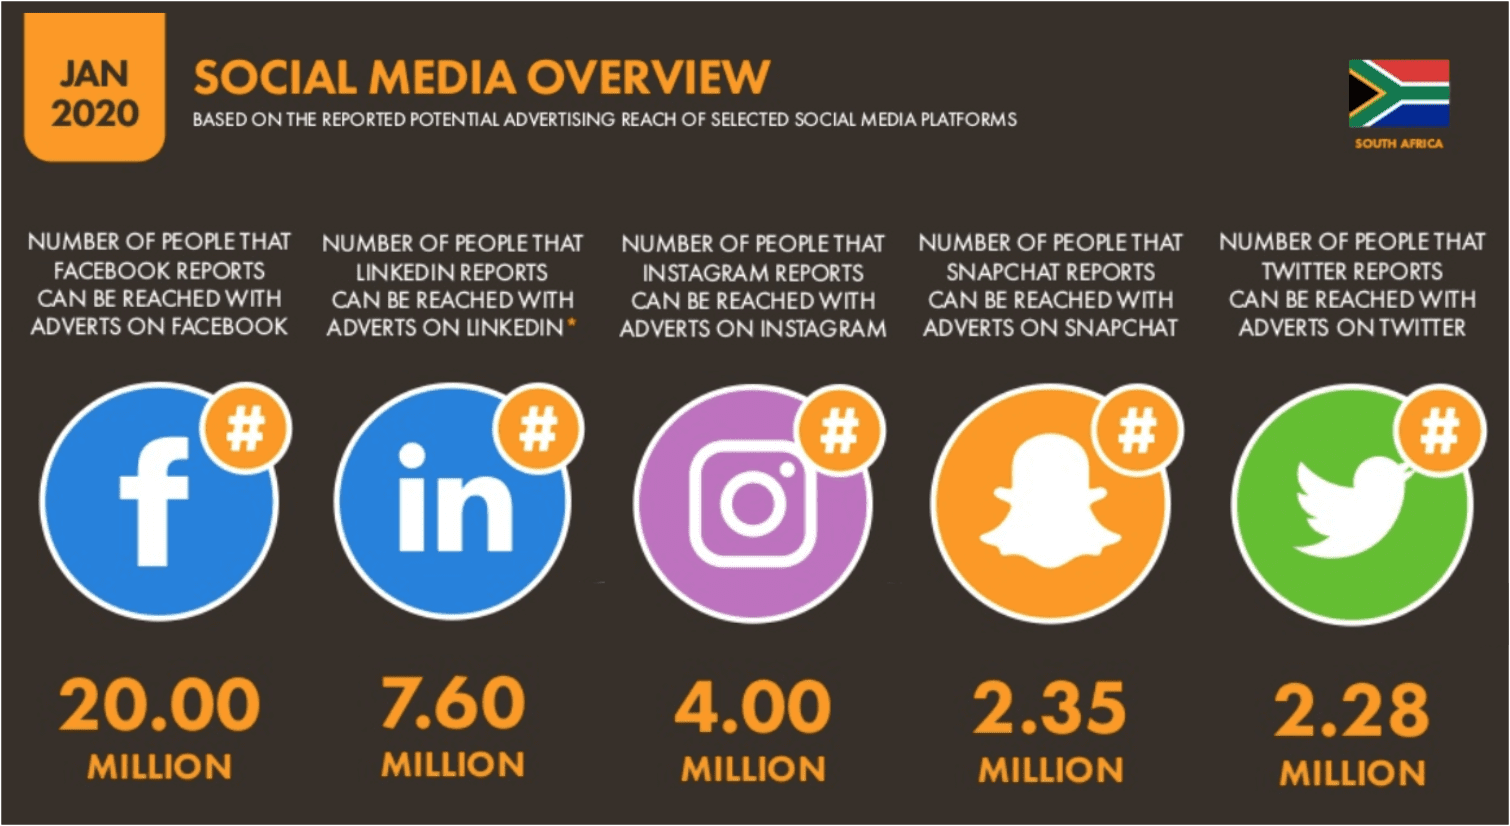 Bra Willy Seyama | eNitiate | We Are Social | Digital Report 2020 | Top 5 Social Networks | COVID-19 | South Africa | 21 Aug 2020